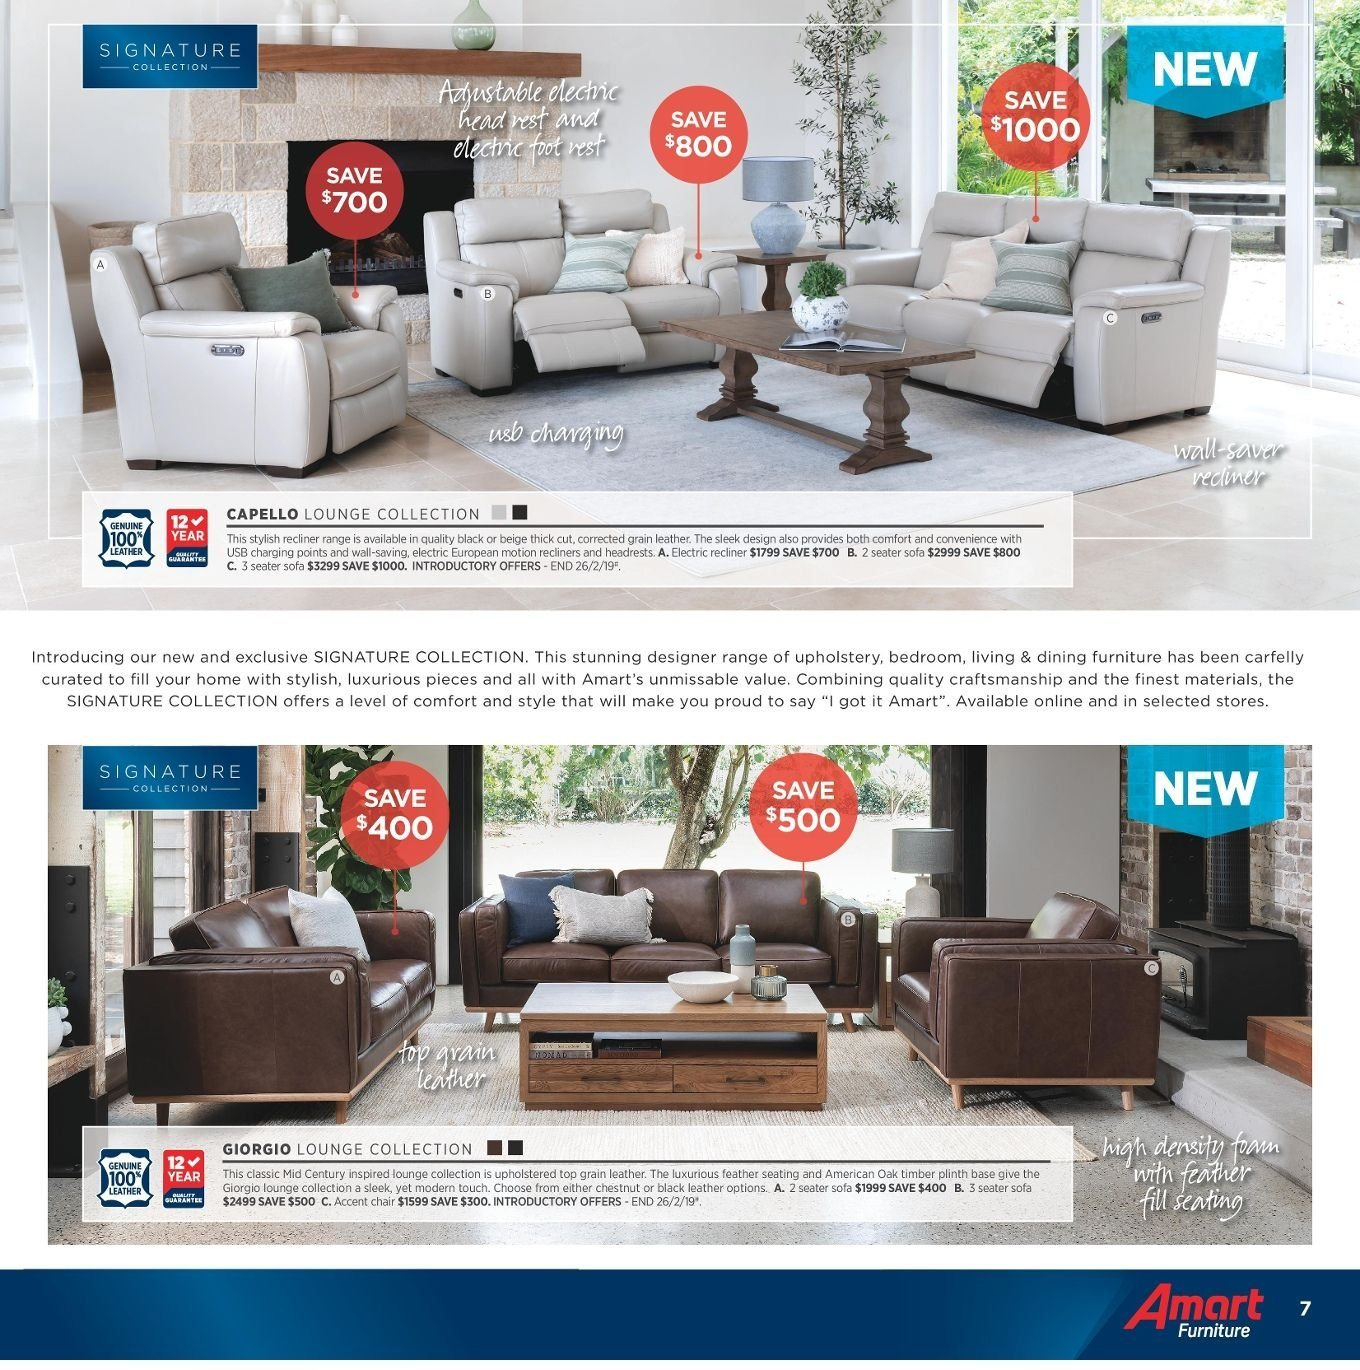 Remarkable Amart Furniture Catalogue And Weekly Specials 30 1 2019 Ibusinesslaw Wood Chair Design Ideas Ibusinesslaworg